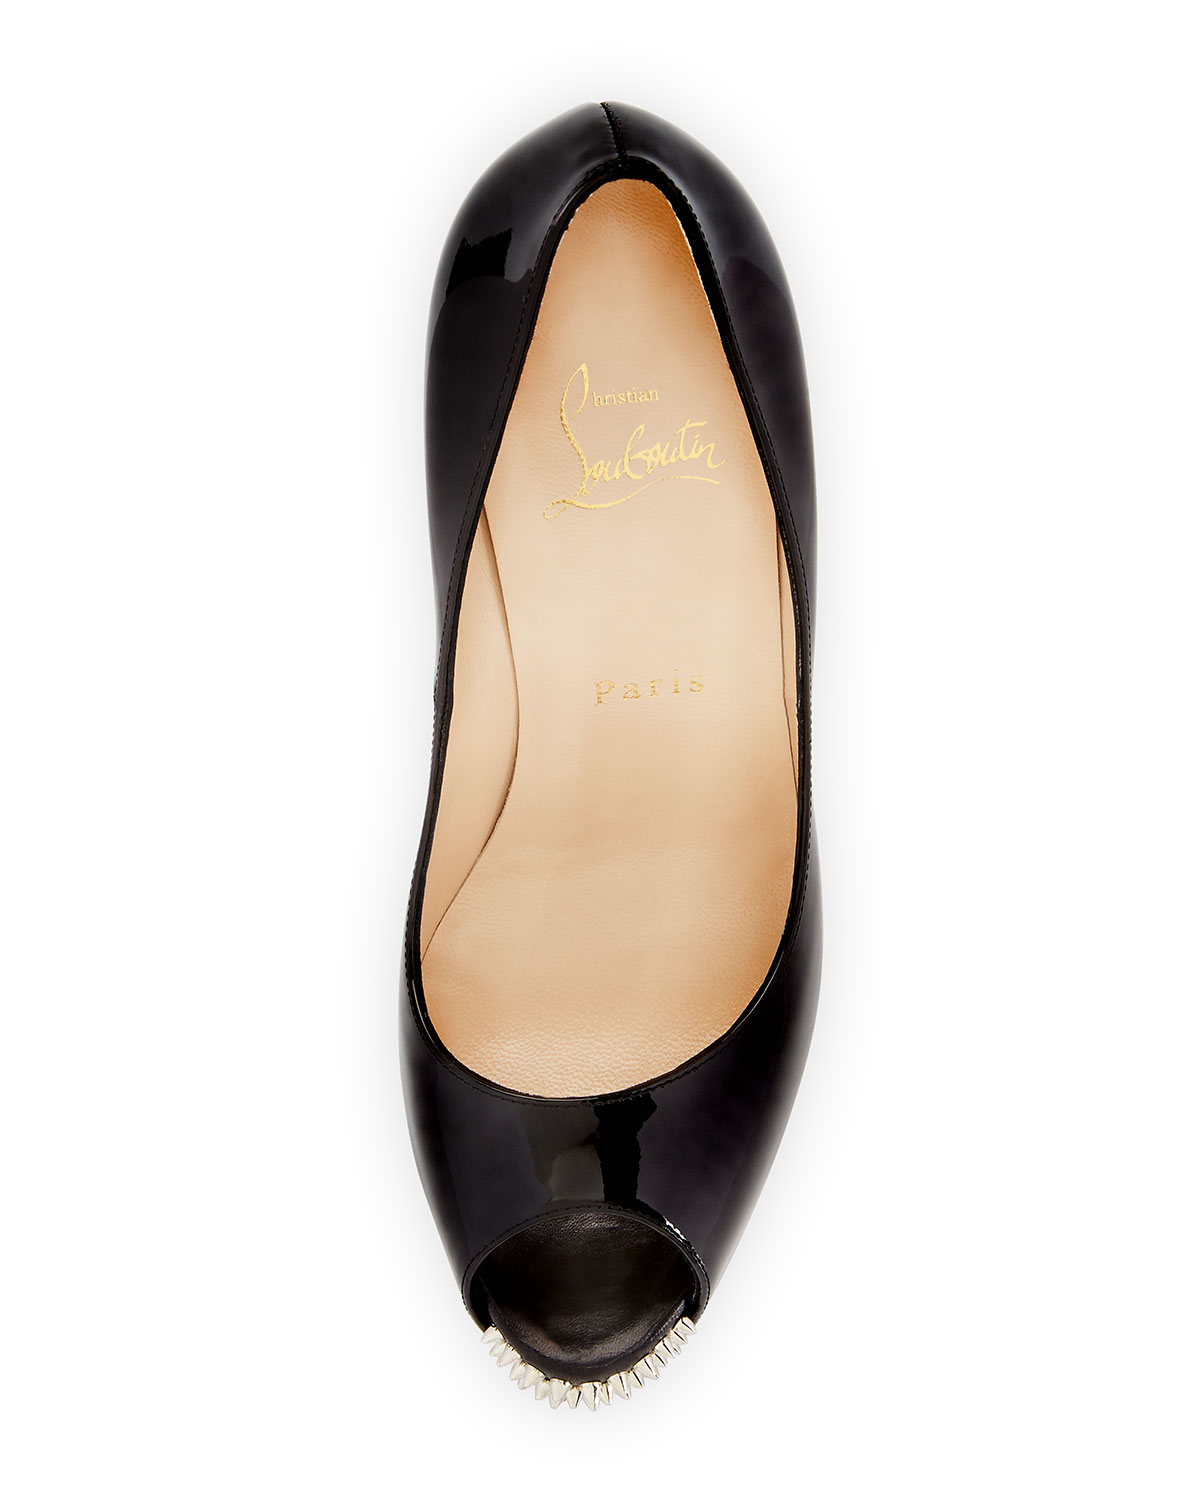 black loafers with spikes - Christian louboutin New Very Prive Studded Leather Pumps in Black ...